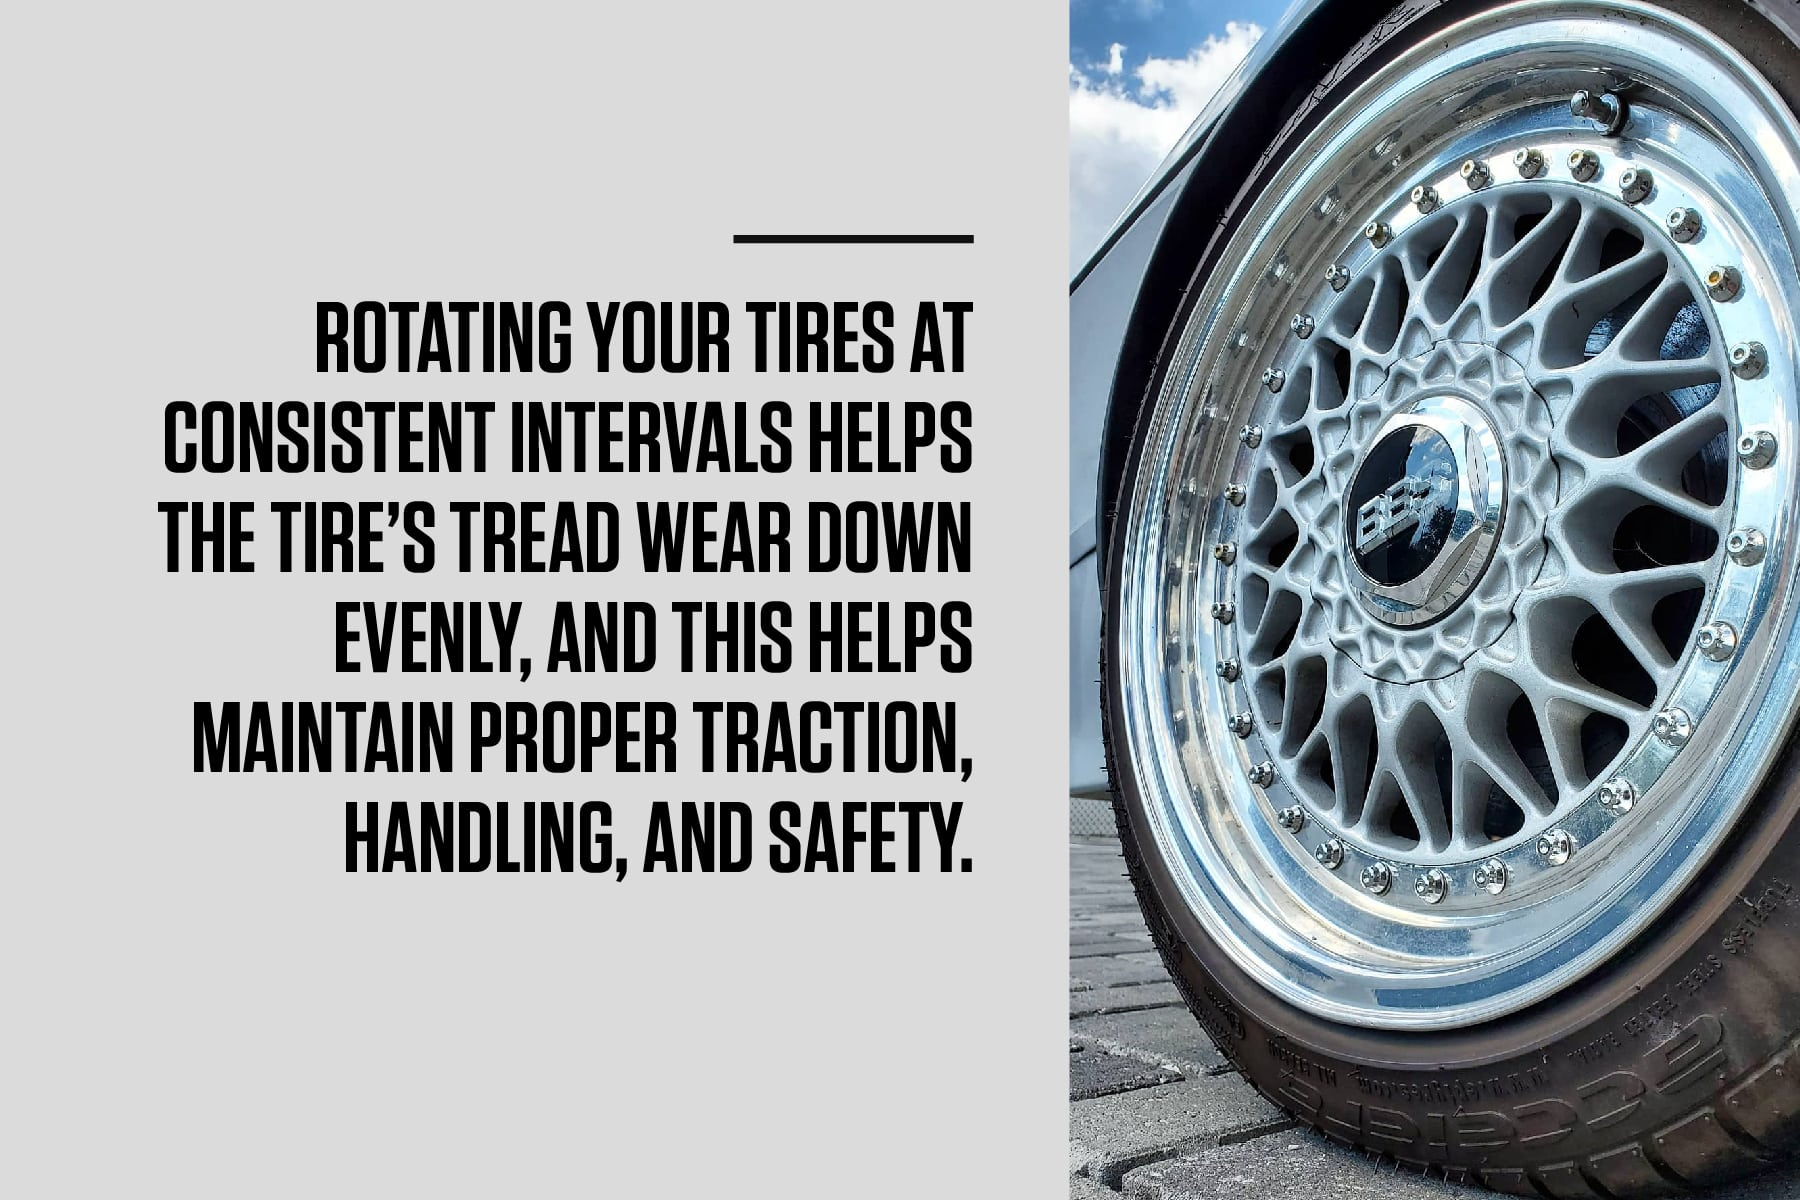 rotate your vw car's tires at consistent intervals